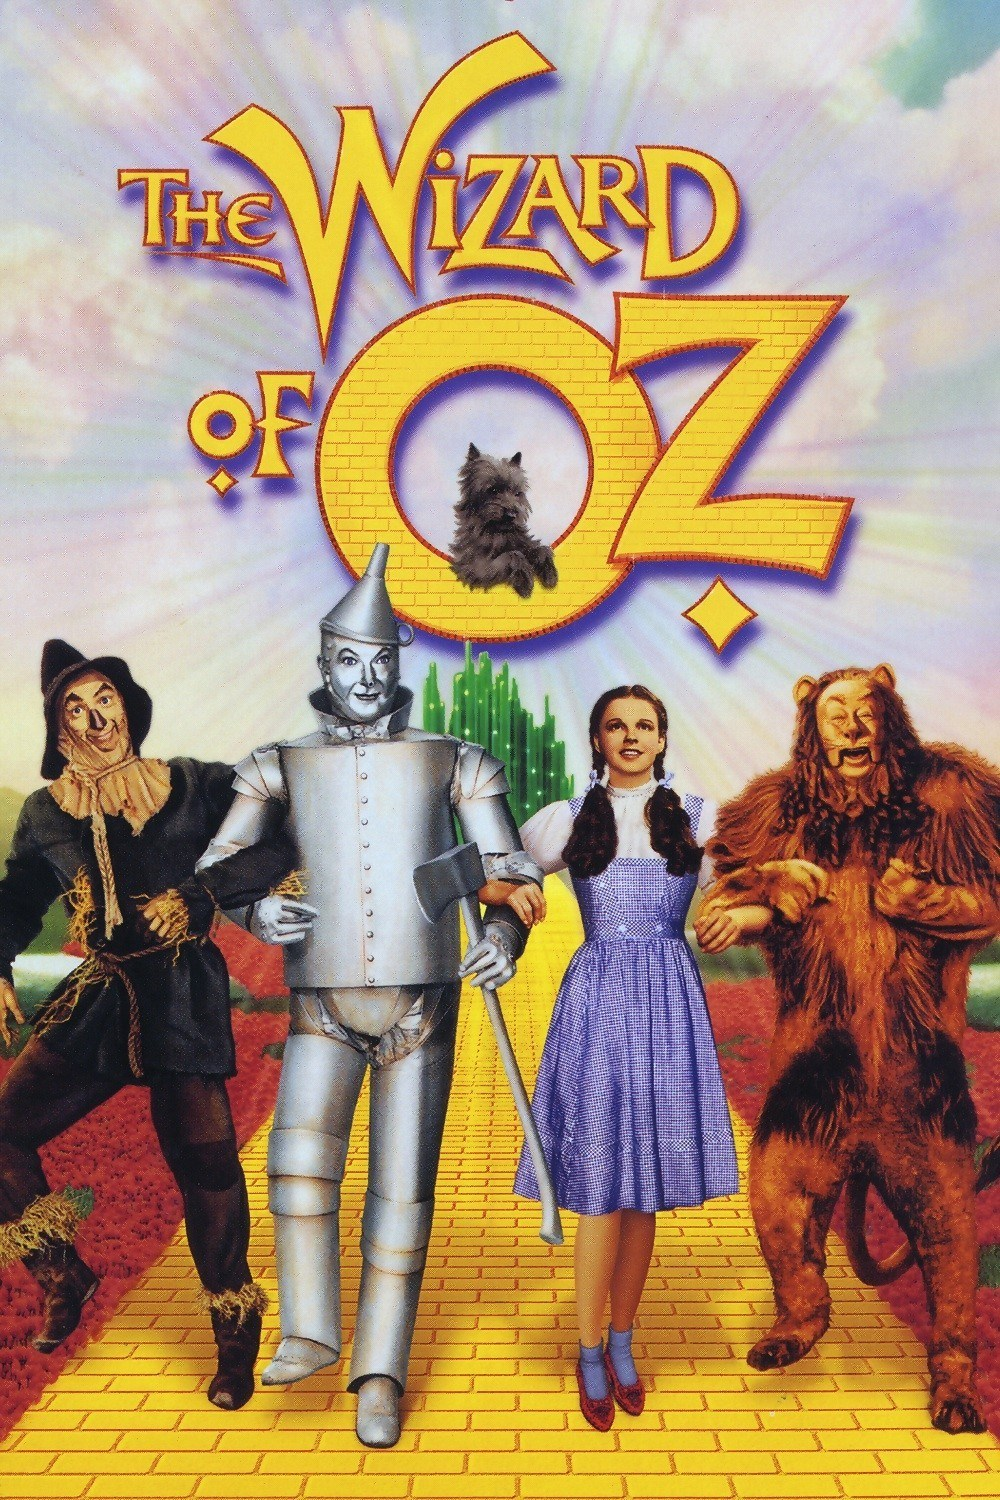 wixard of oz